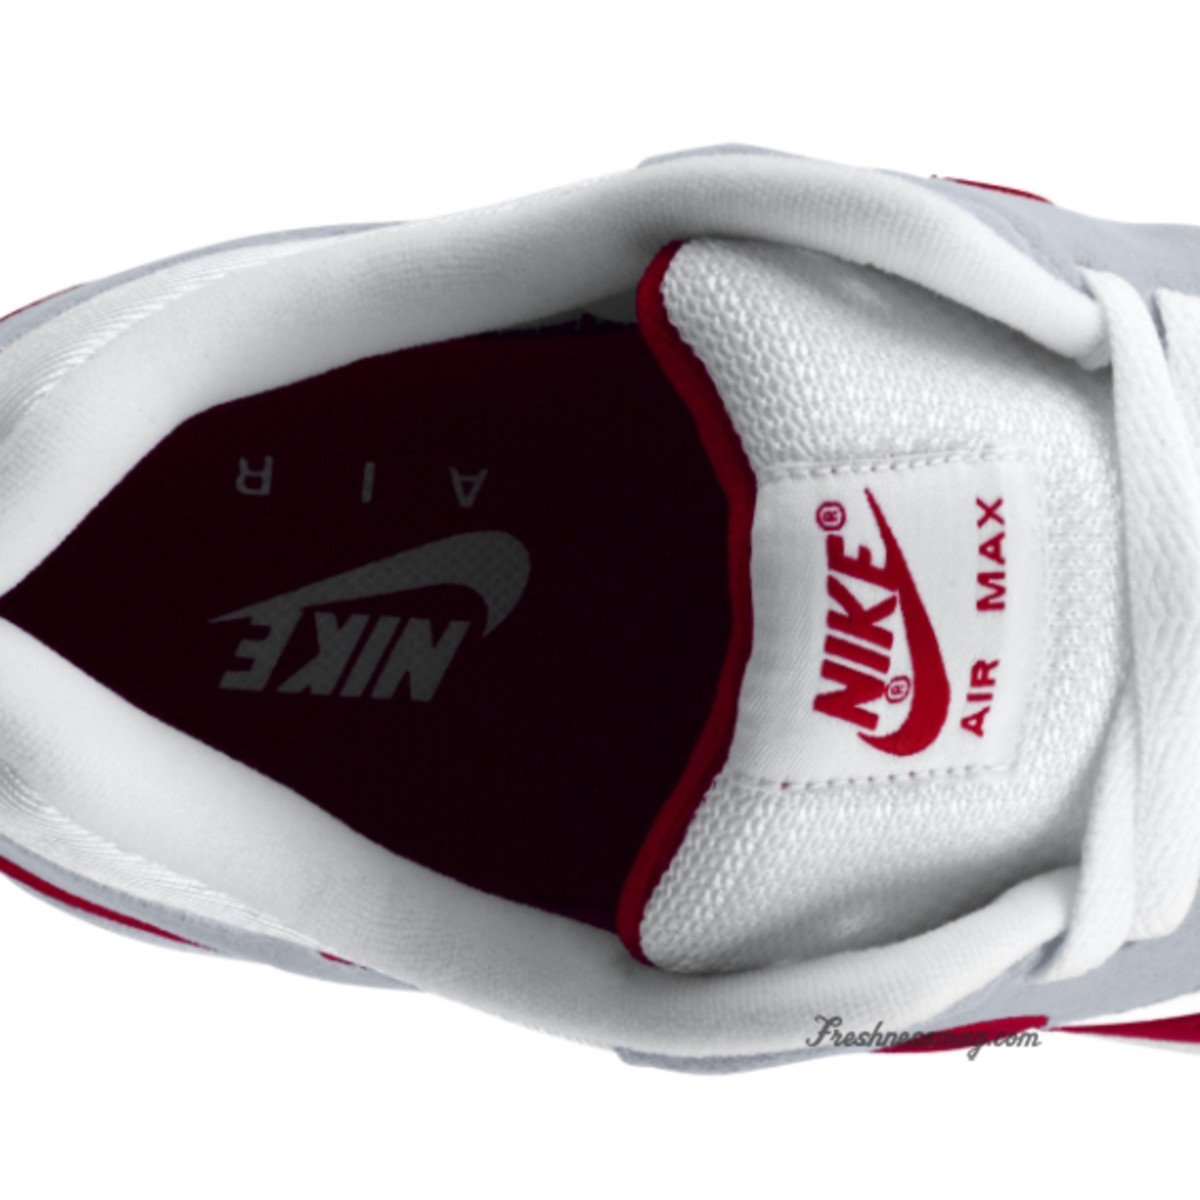 nike-air-max-1-sport-red-378830-161-05